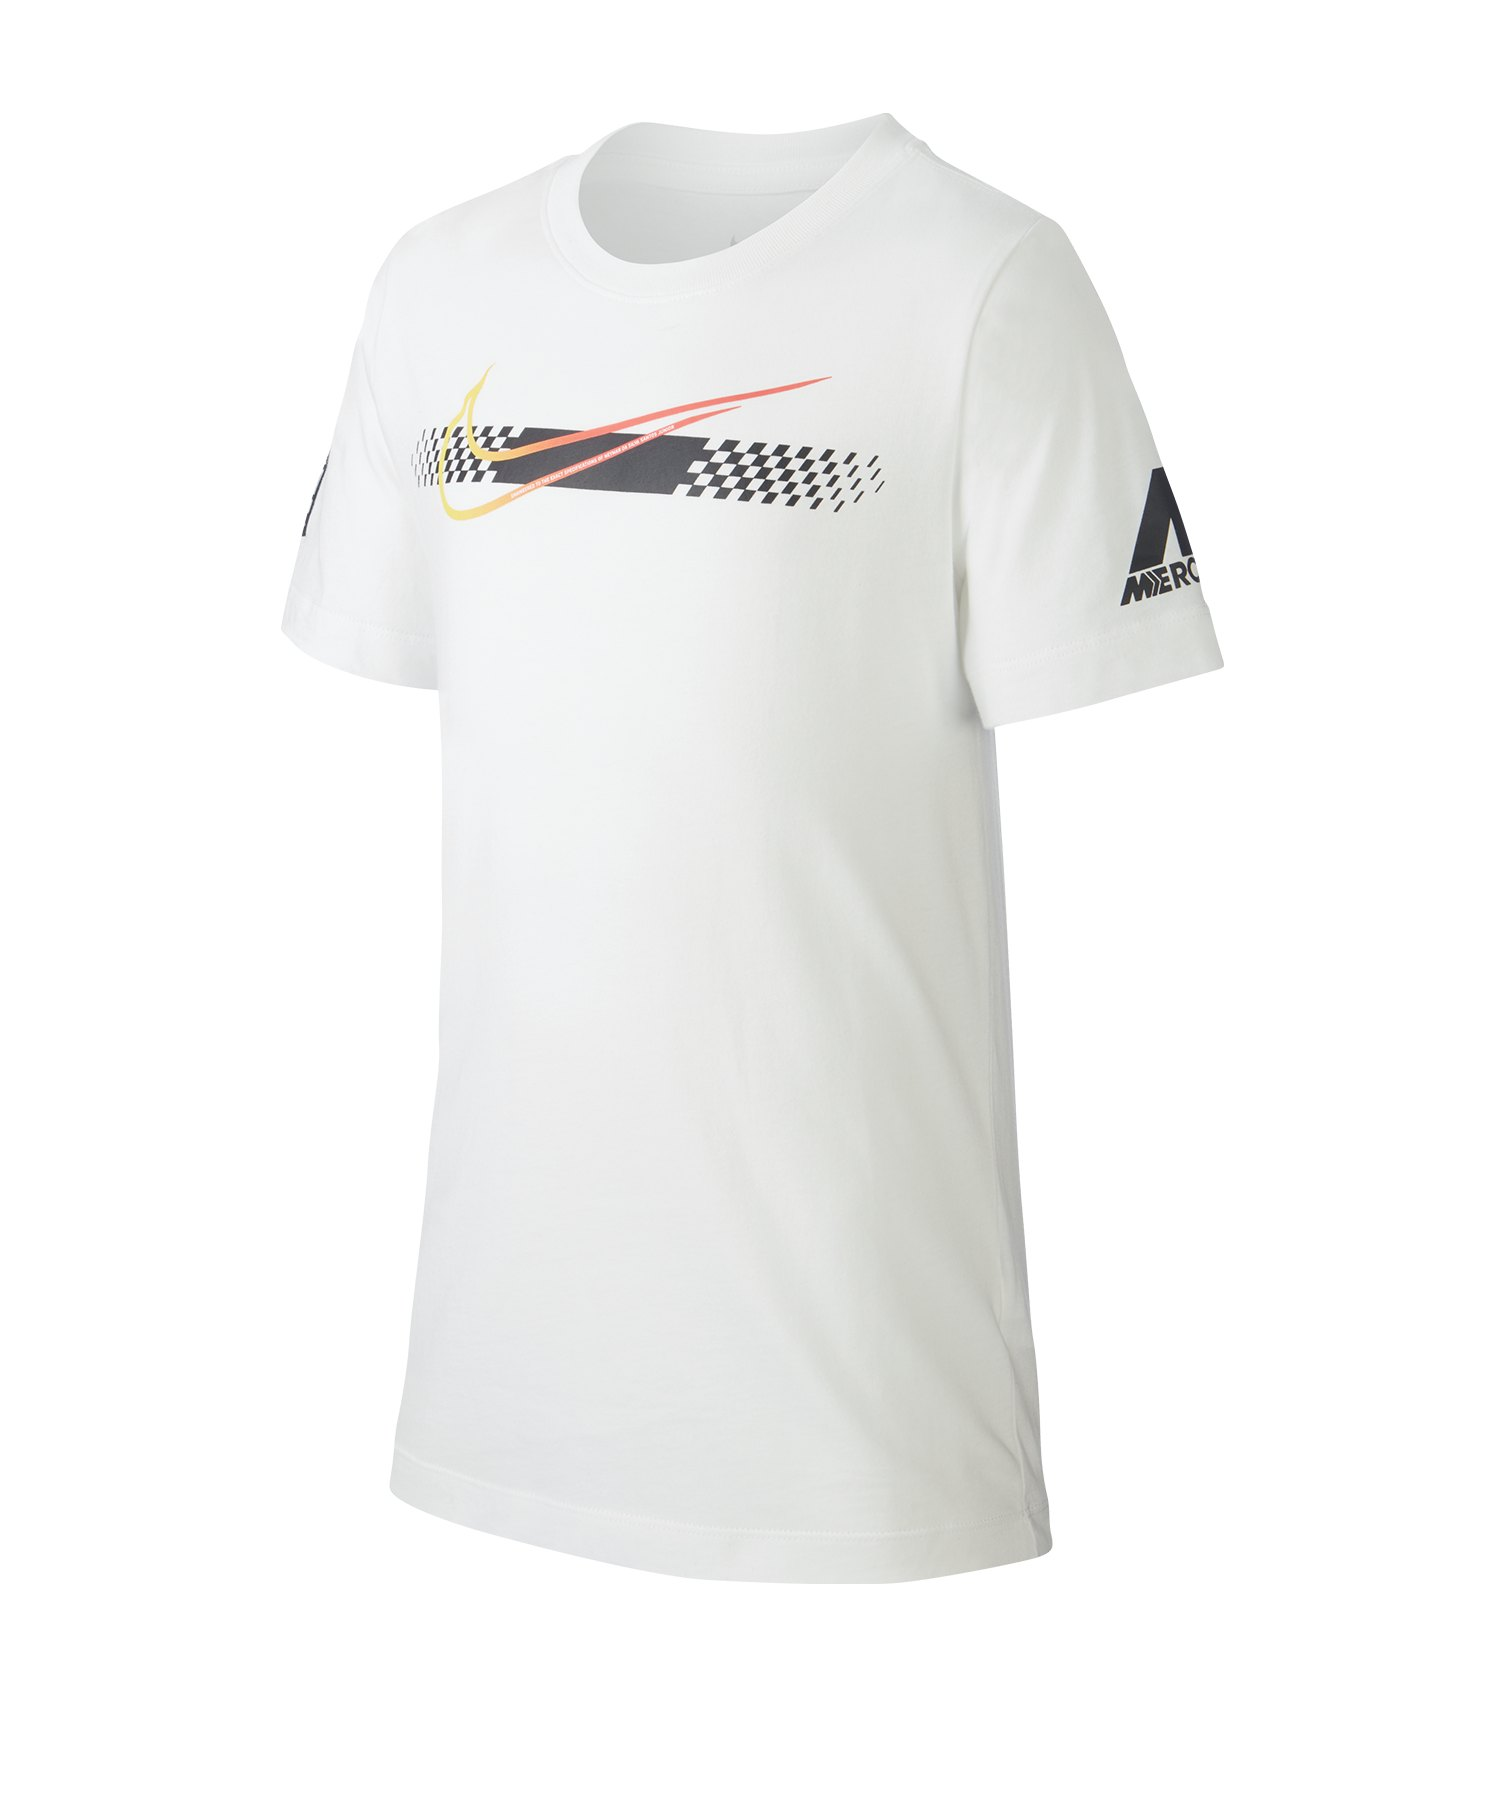 Nike Neymar Jr. Mercurial T-Shirt Kids F100 - weiss